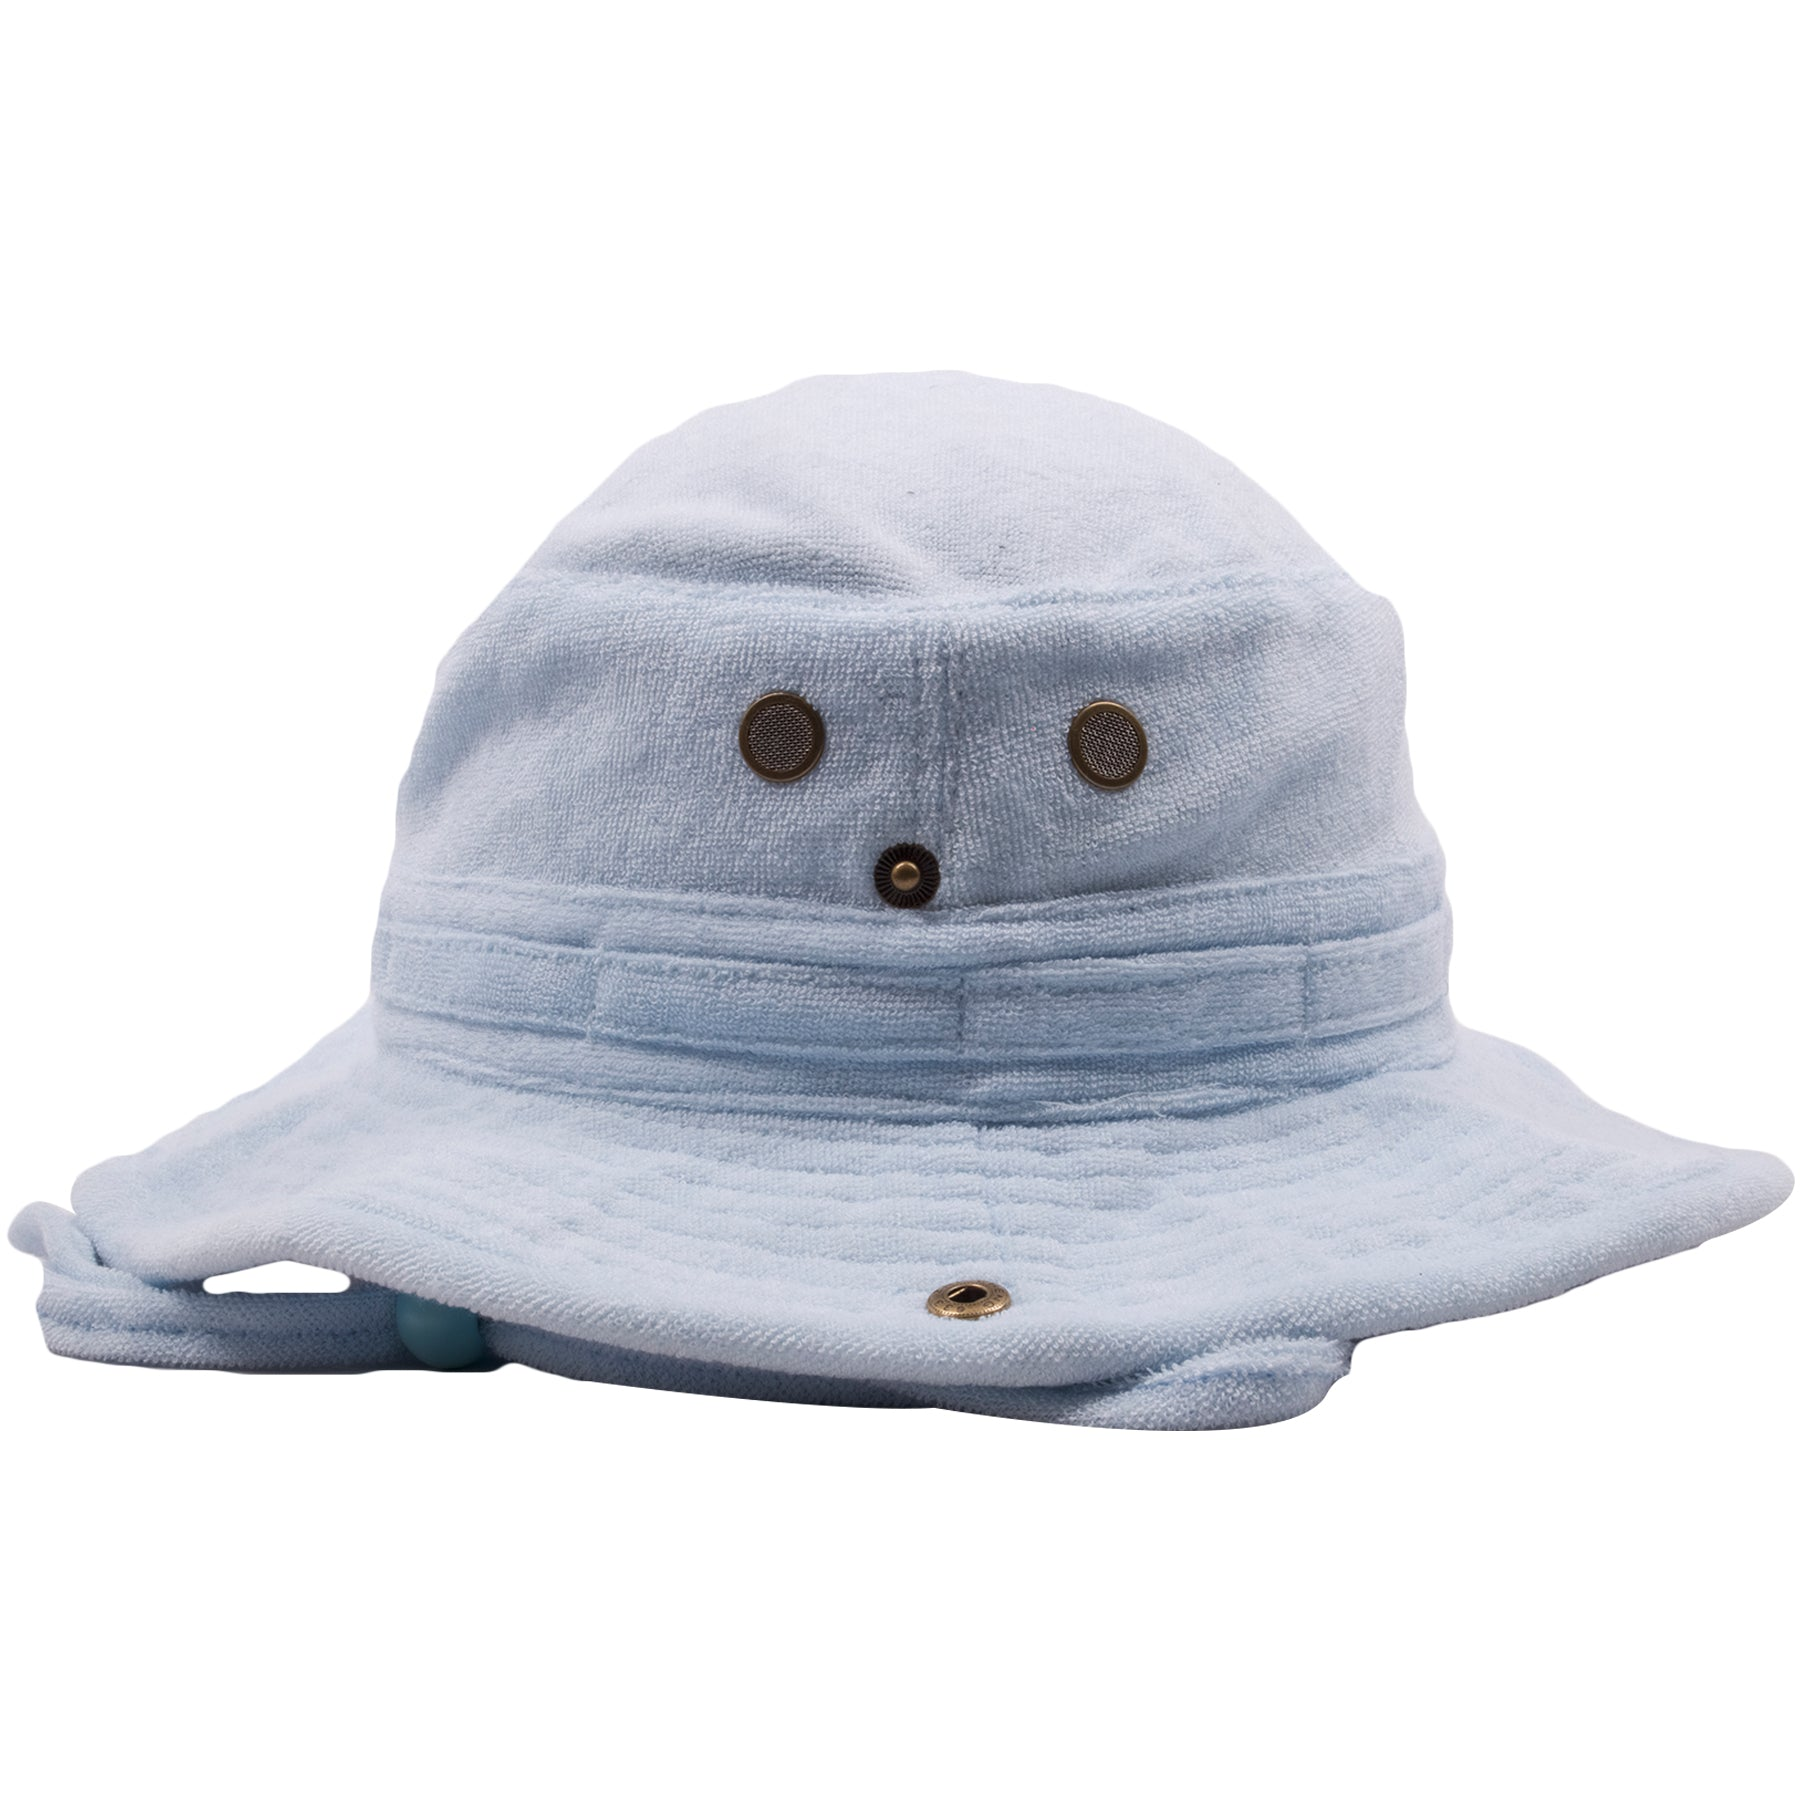 ... adjustable chinstrap  the sides of the light blue terry cloth bucket  hat has airvents for airflow ... 32640a5d816c